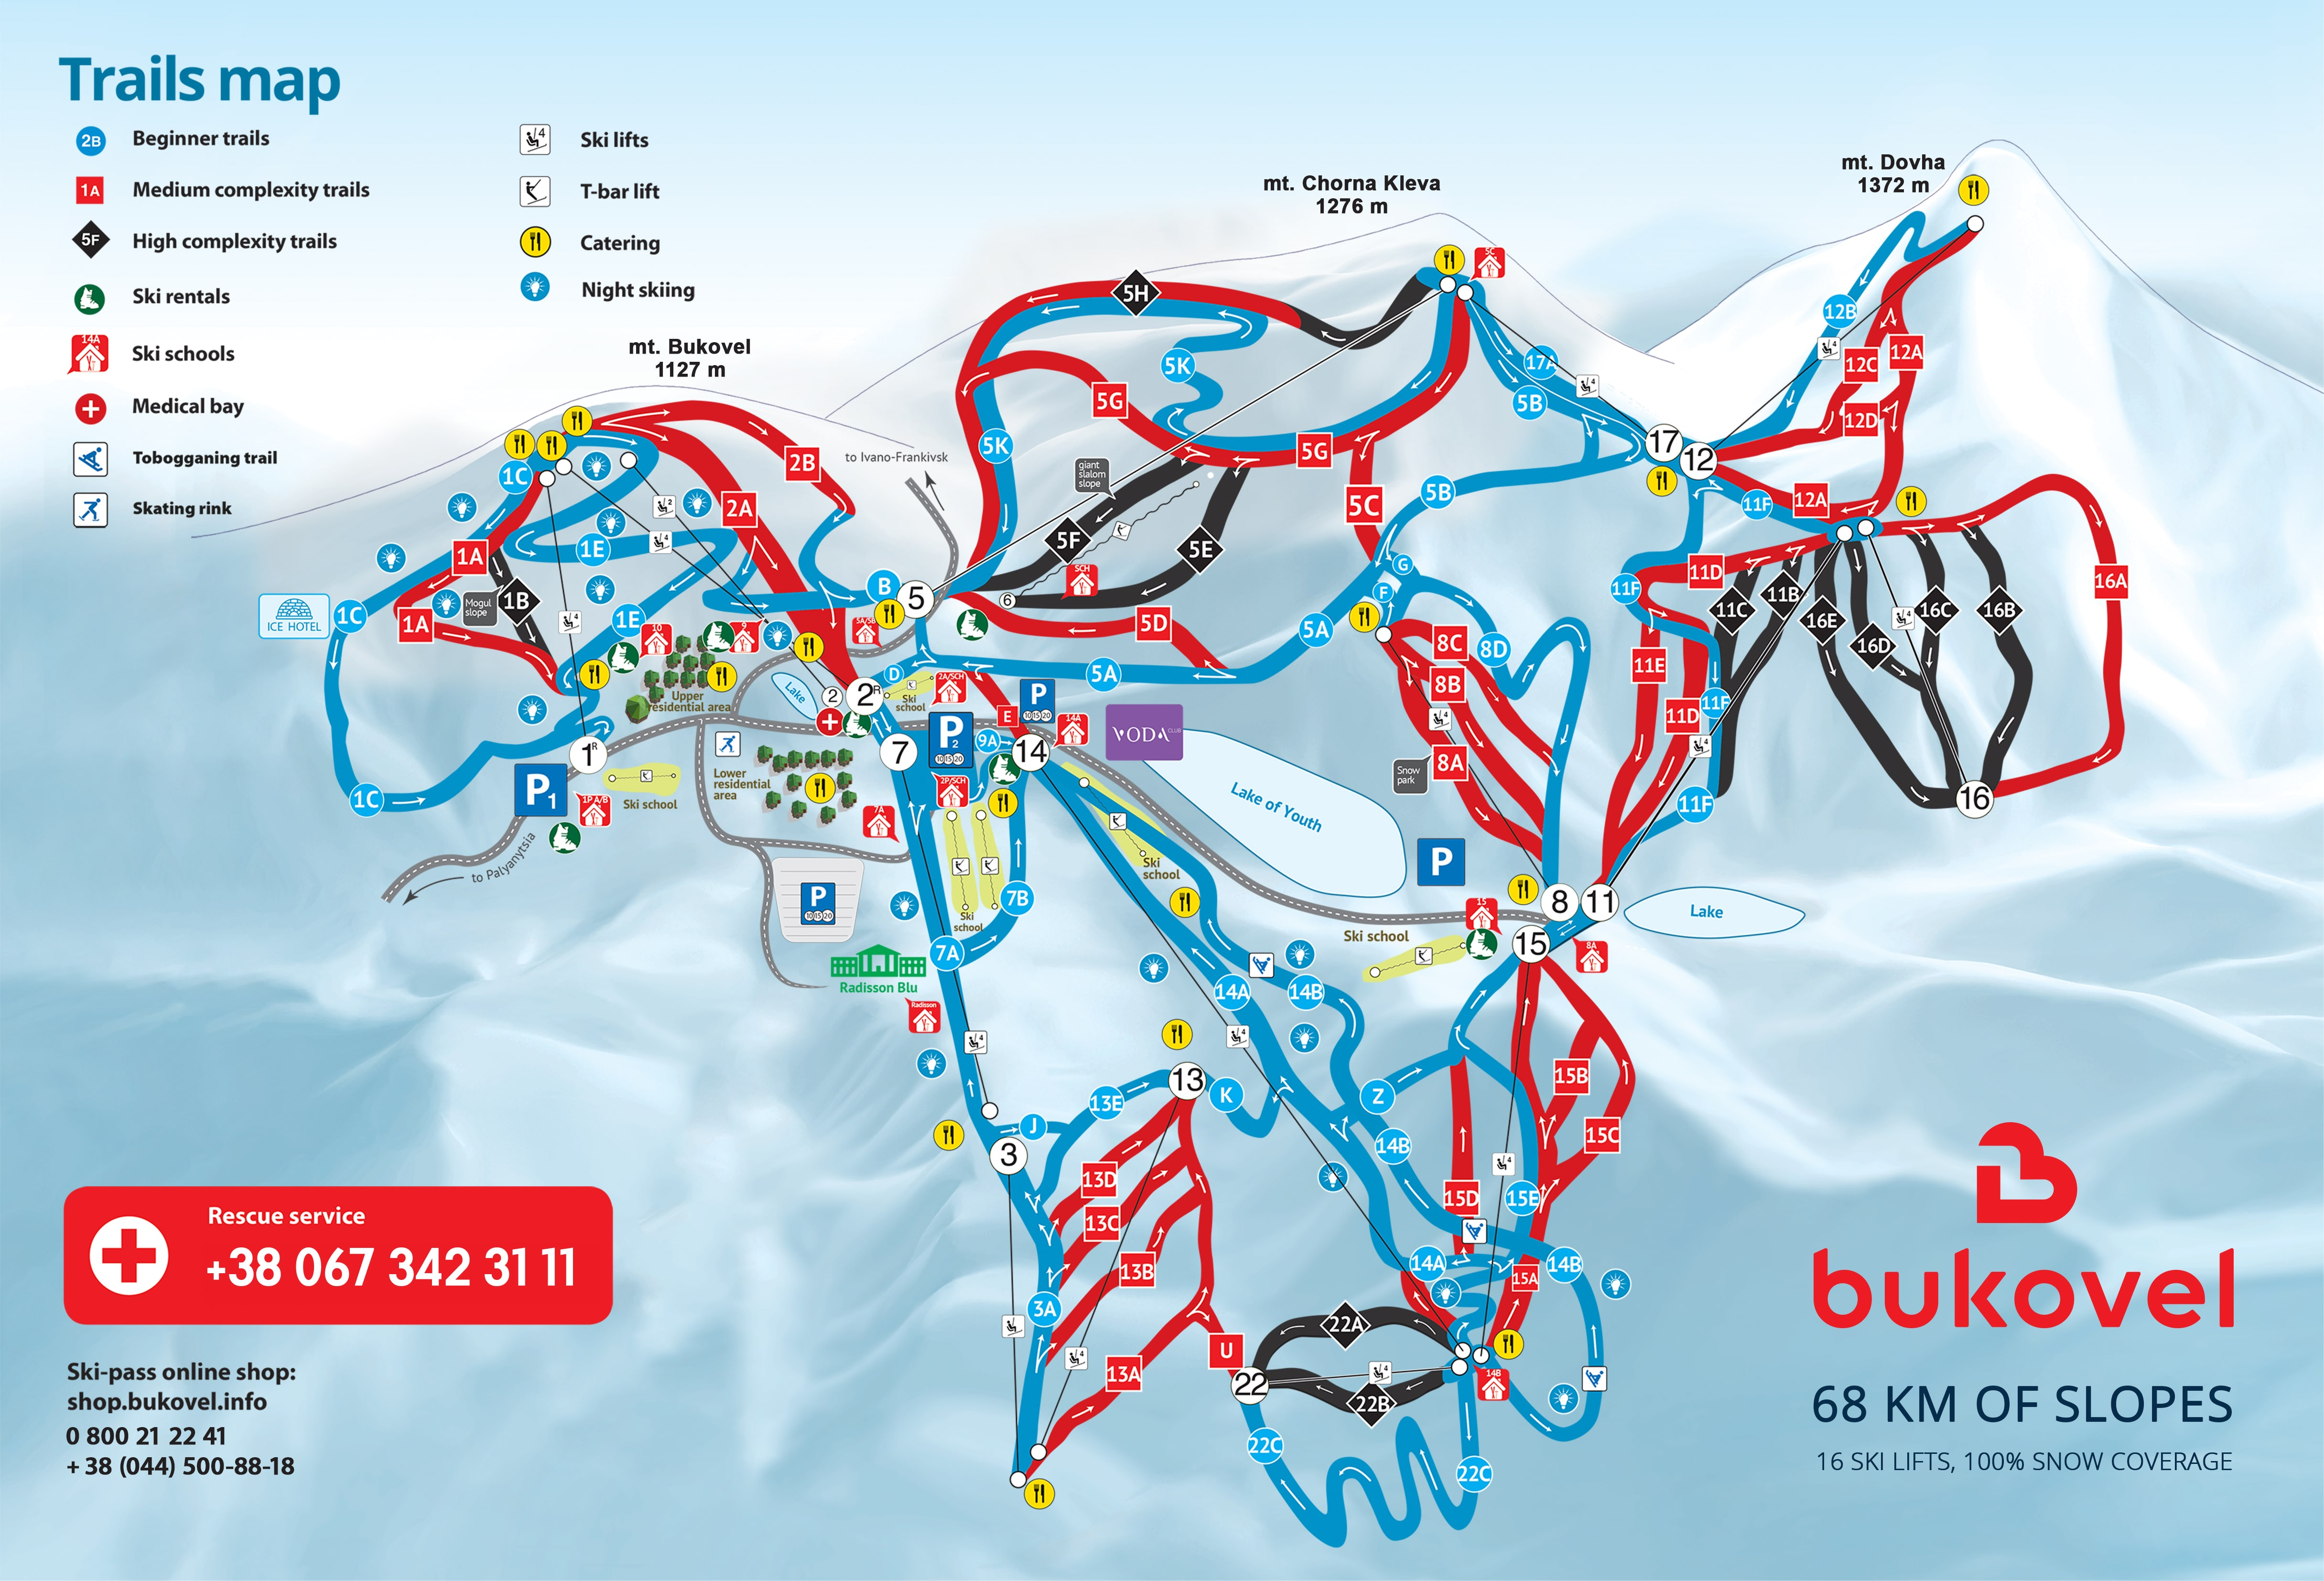 Bukovel Piste / Trail Map